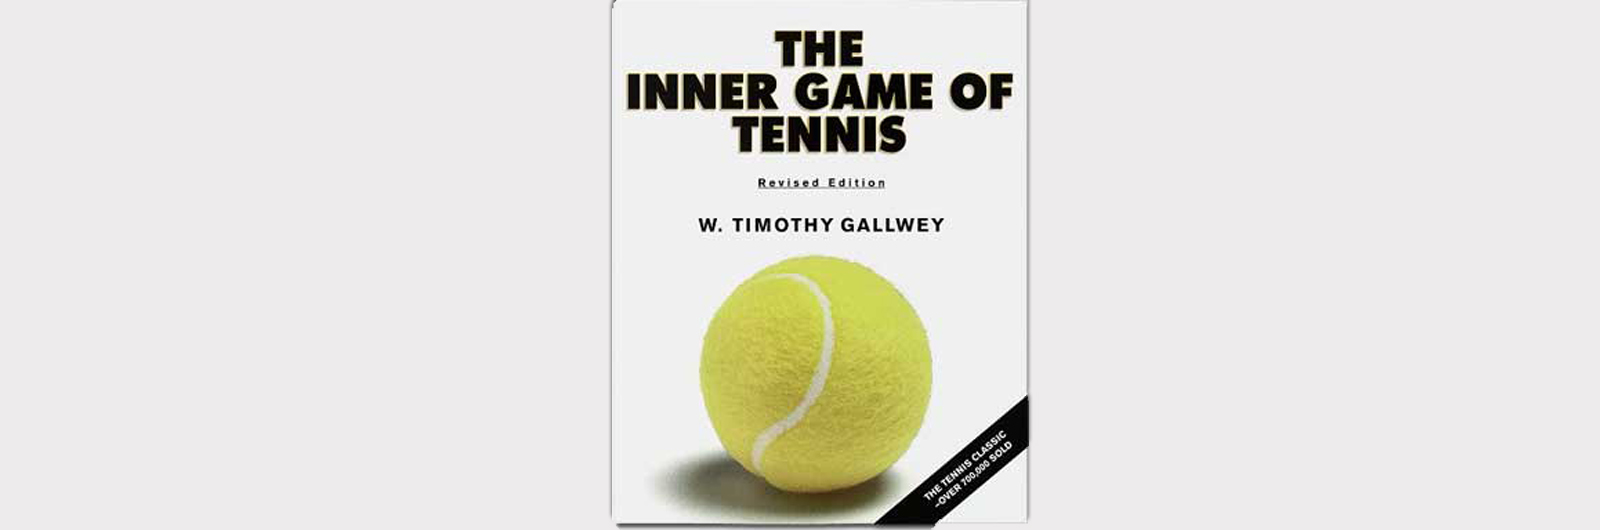 Inner Game of Tennis cover